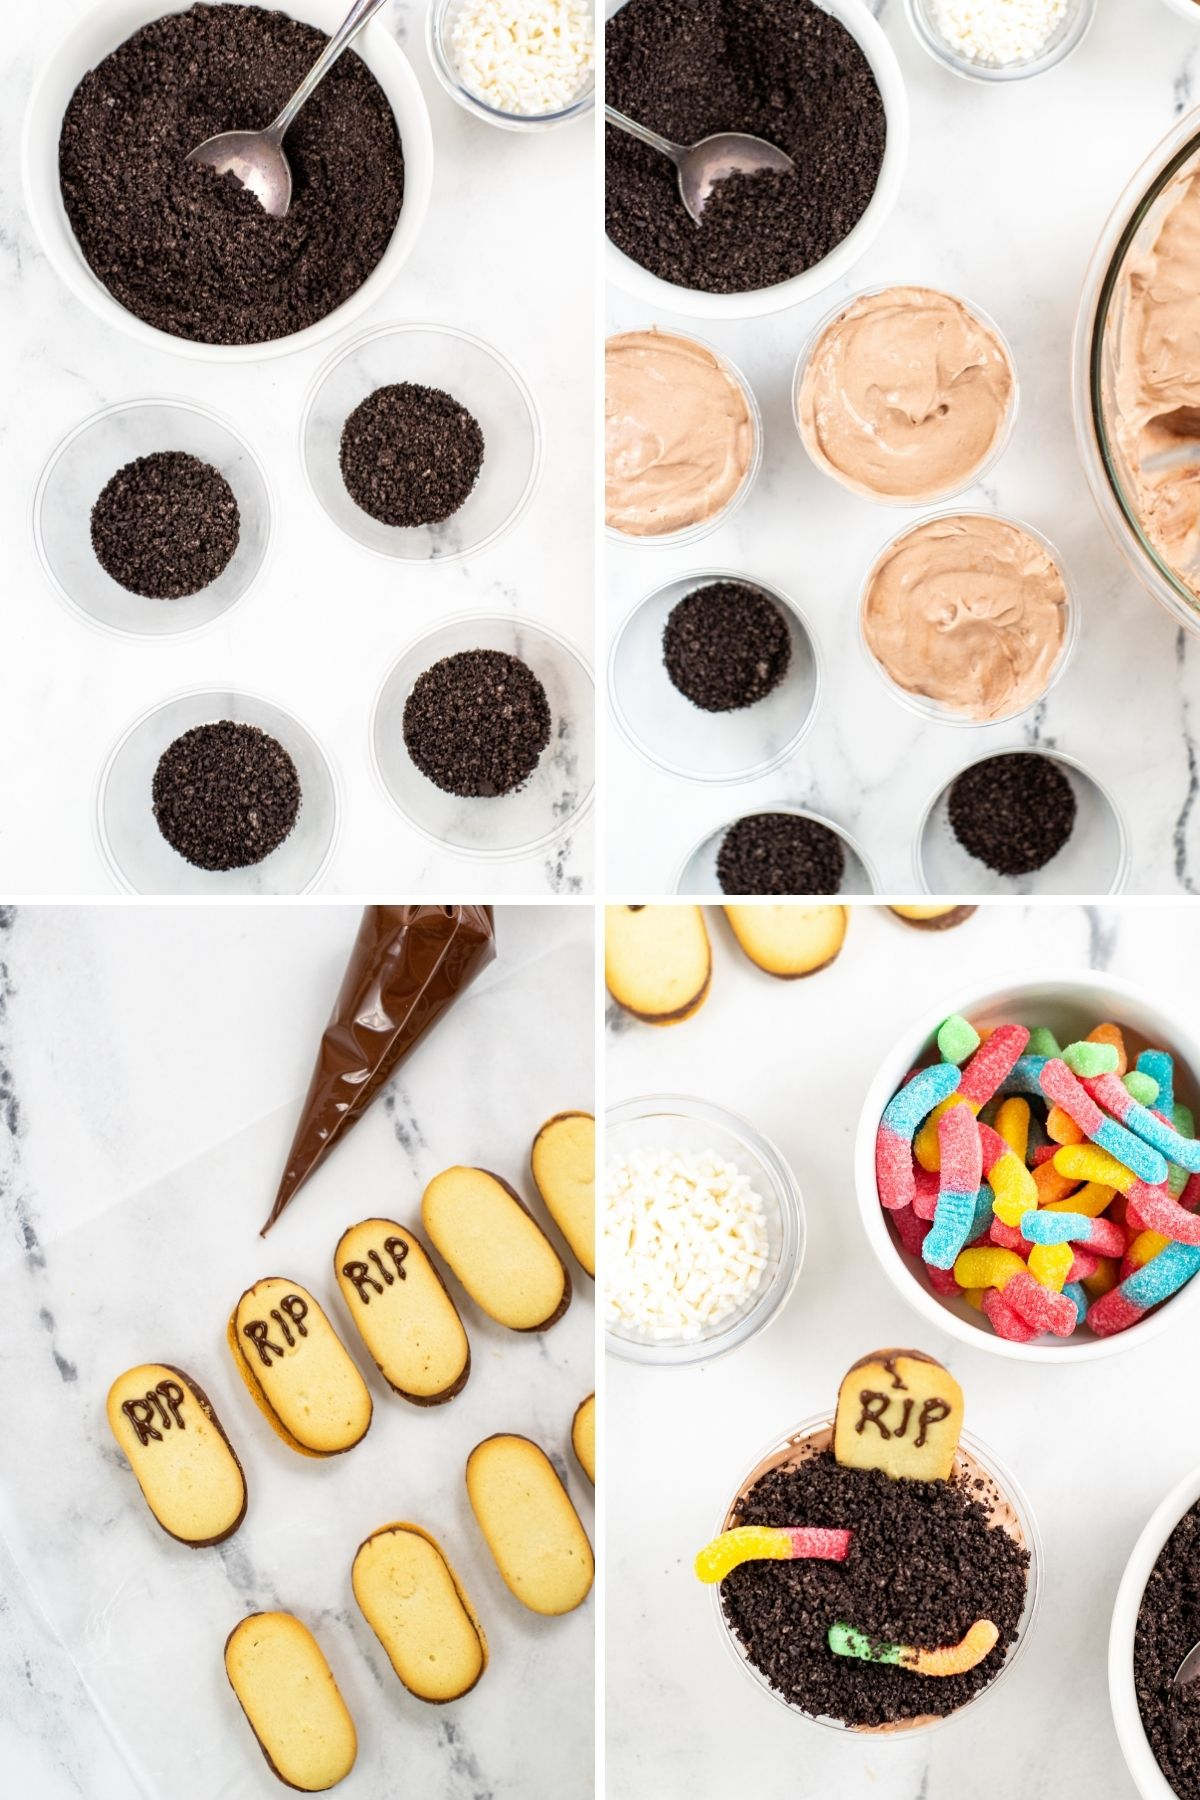 crushed Oreos in bottom of plastic cups, chocolate pudding added on top of crumbs, RIP being written on Milano cookies with piping bag, top of finished pudding cup with gummy worms on the side.